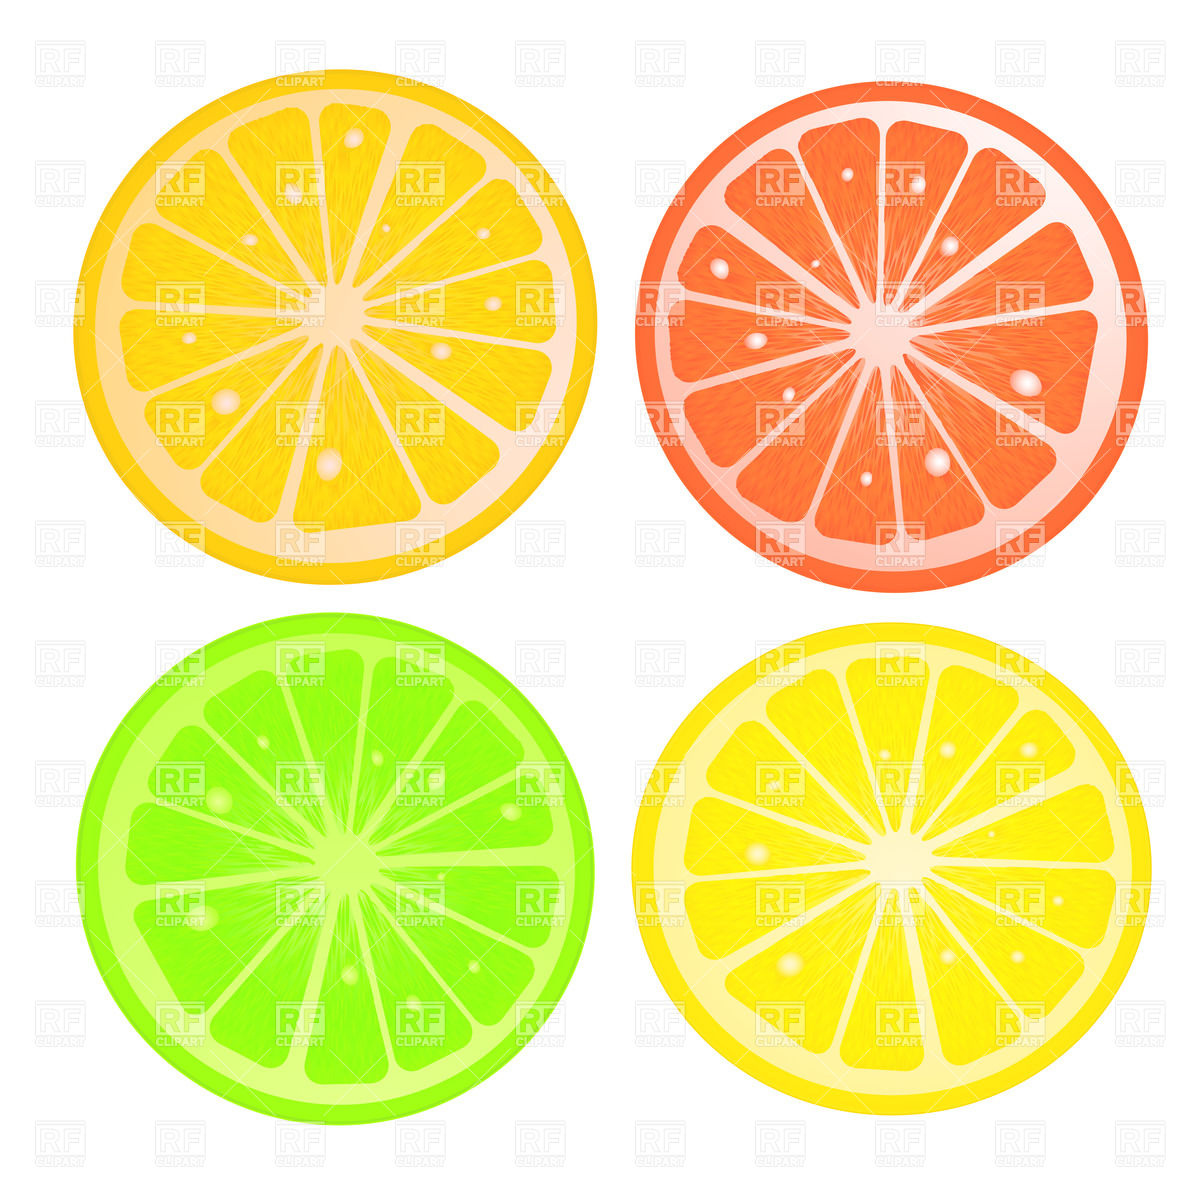 Various citric slices against white background Vector Image #20928.